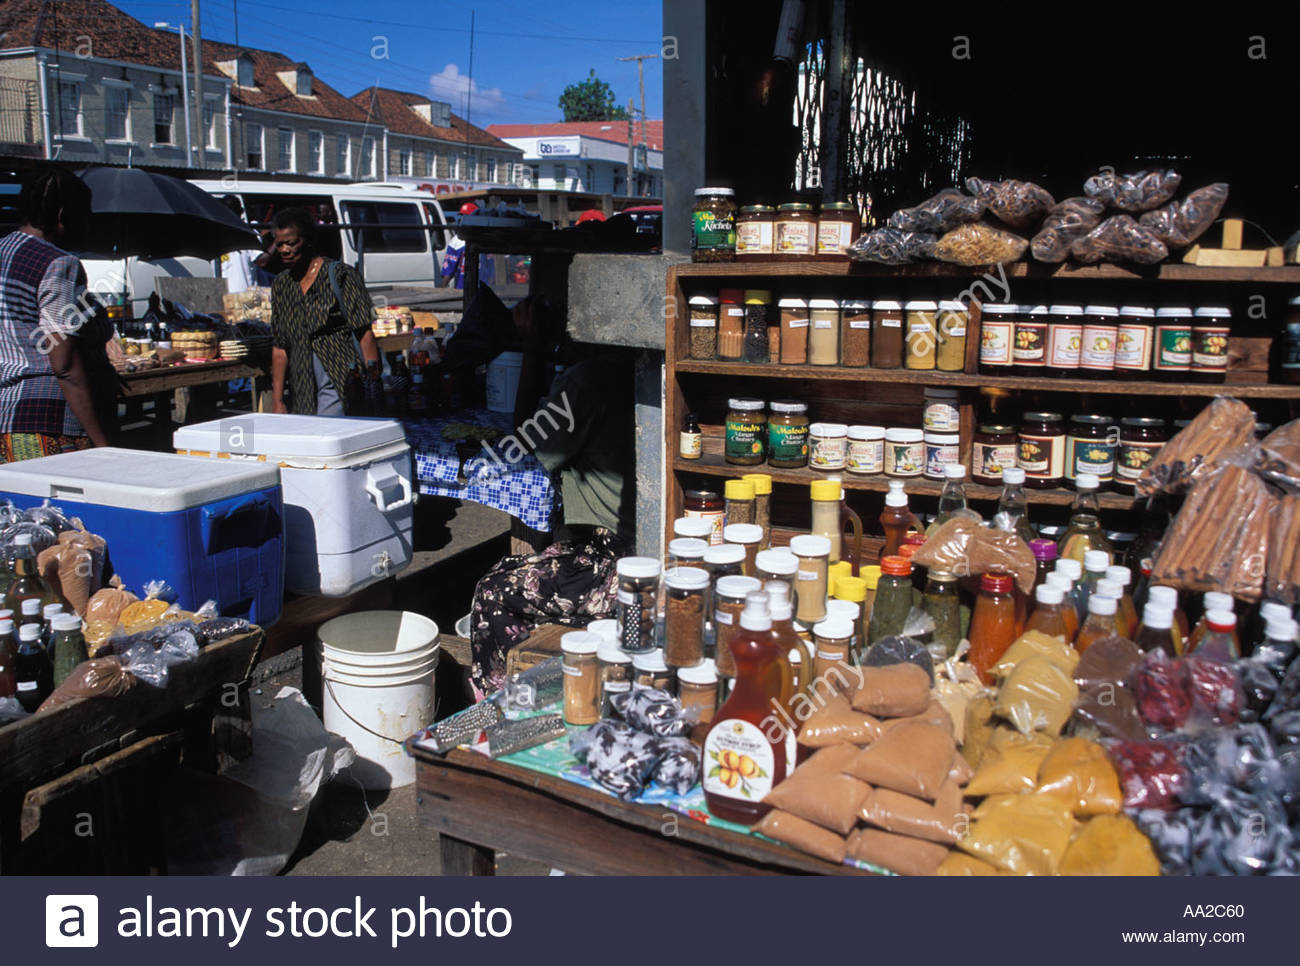 St George's Market Square St George's, Market Square St Georges Grenada Caribbean Stock Photo, Royalty ...